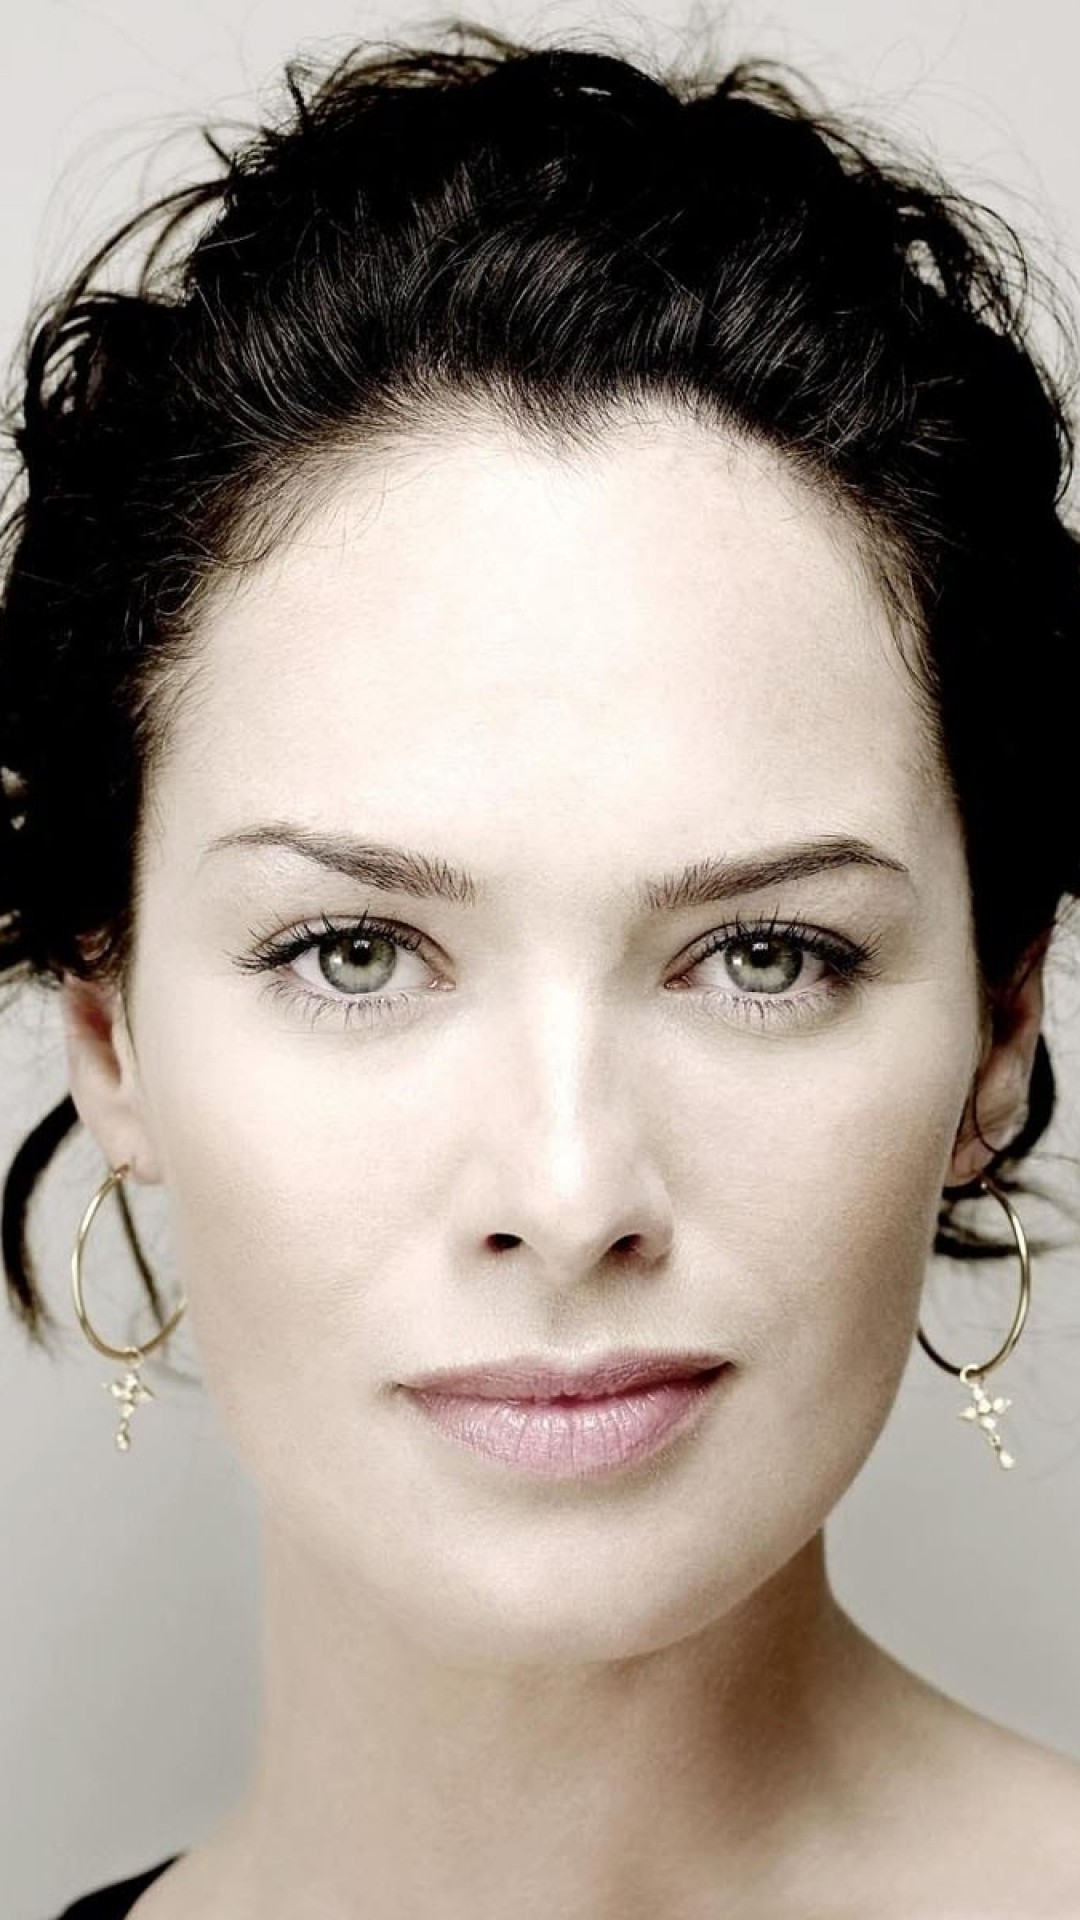 Lena Headey Portrait Wallpaper for SAMSUNG Galaxy S5